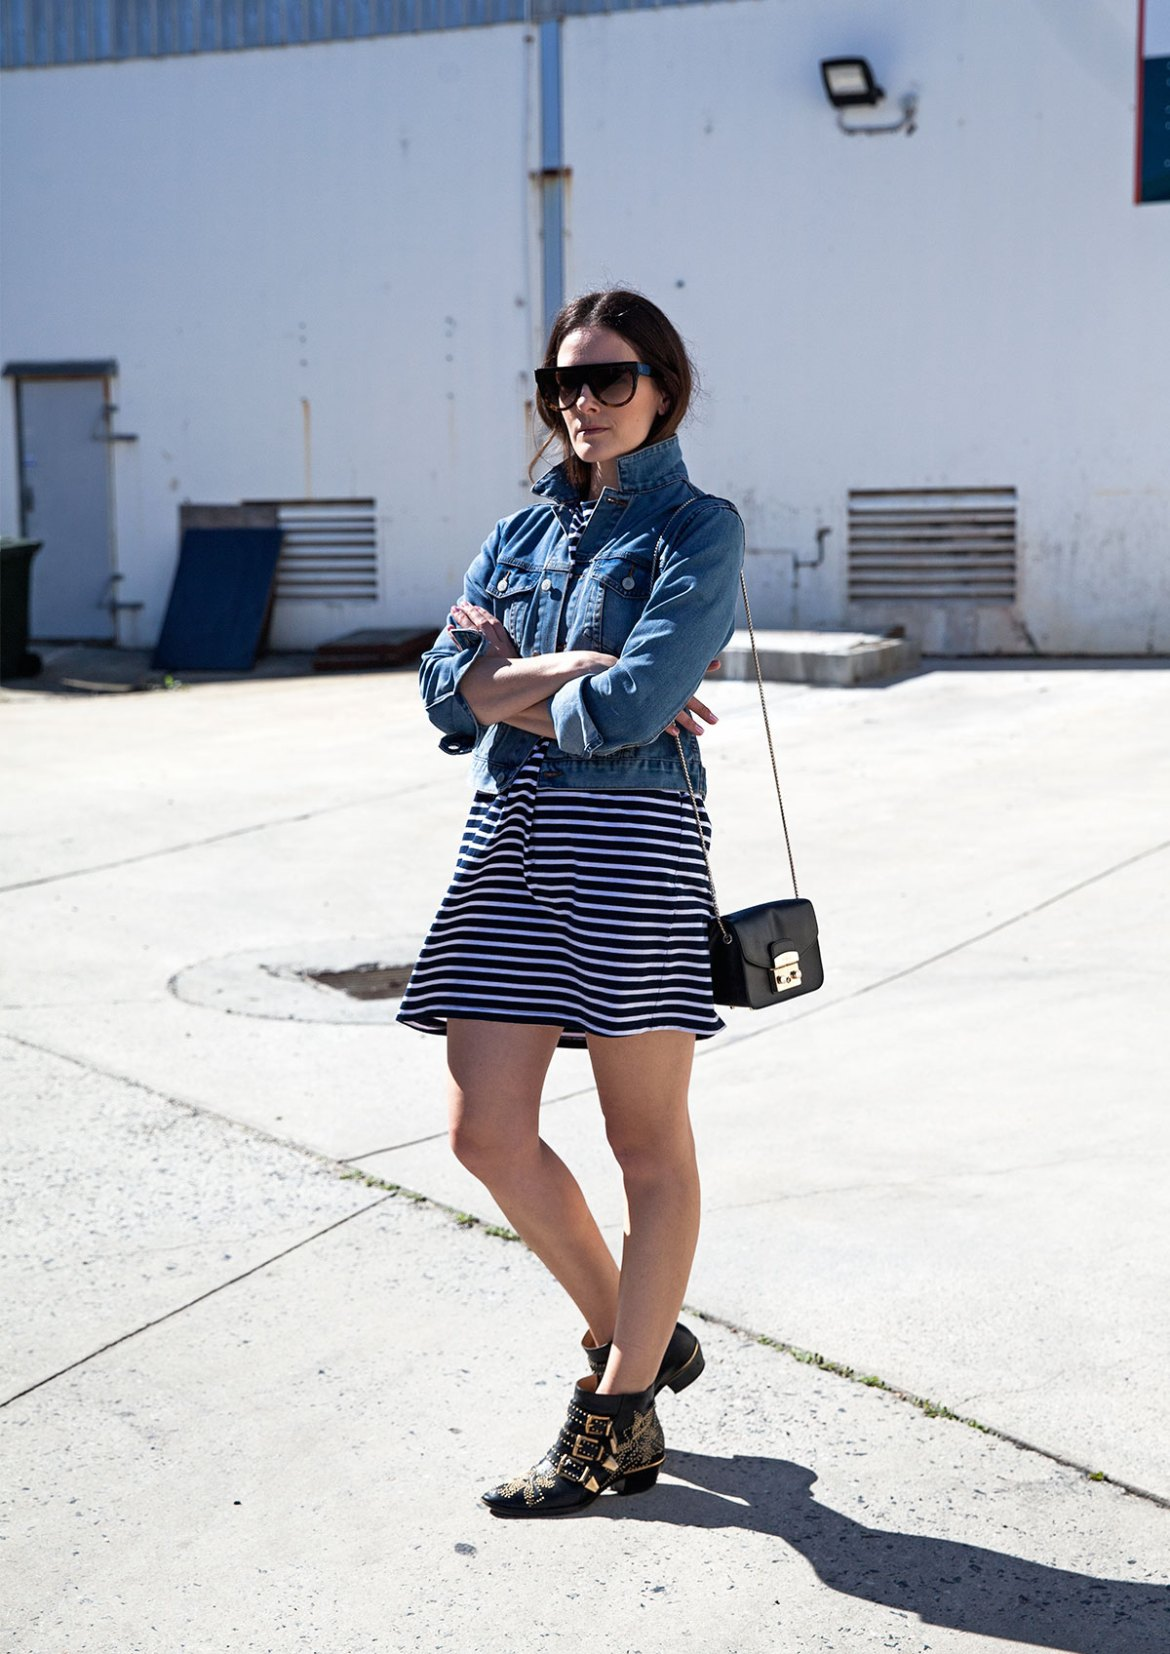 Jenelle of Perth style, travel and fashion blog Inspiring Wit in denim jacket street style luxe